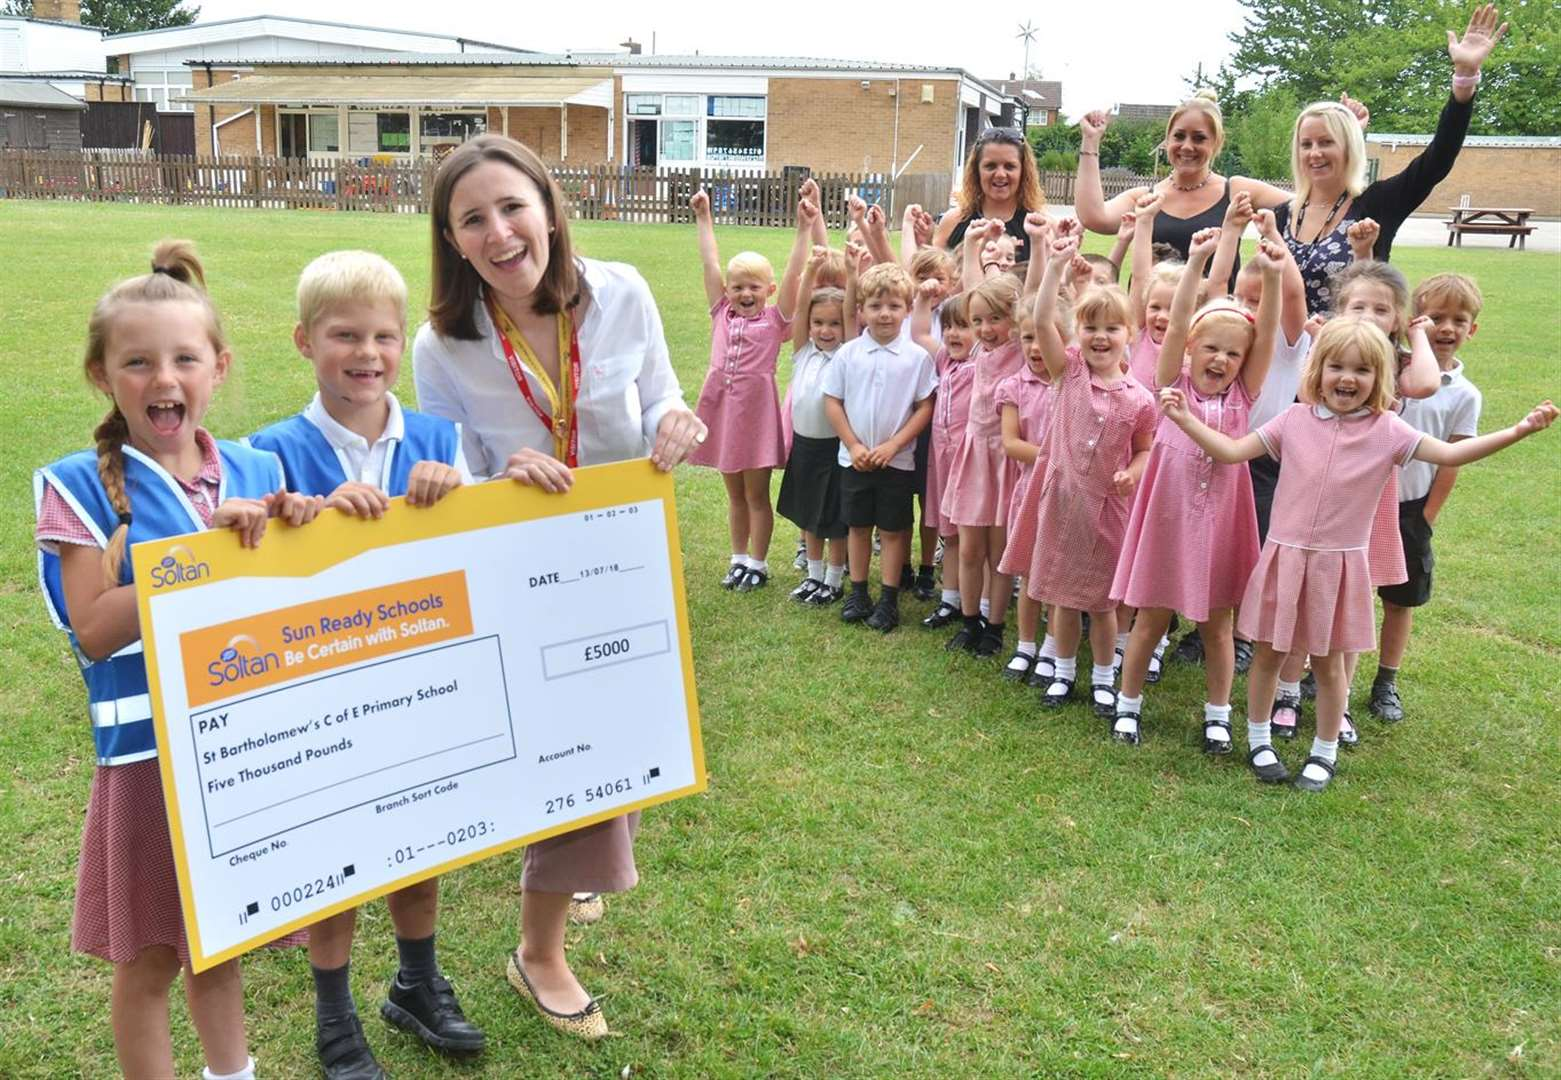 Sunshine at West Pinchbeck school after £5,000 competition win